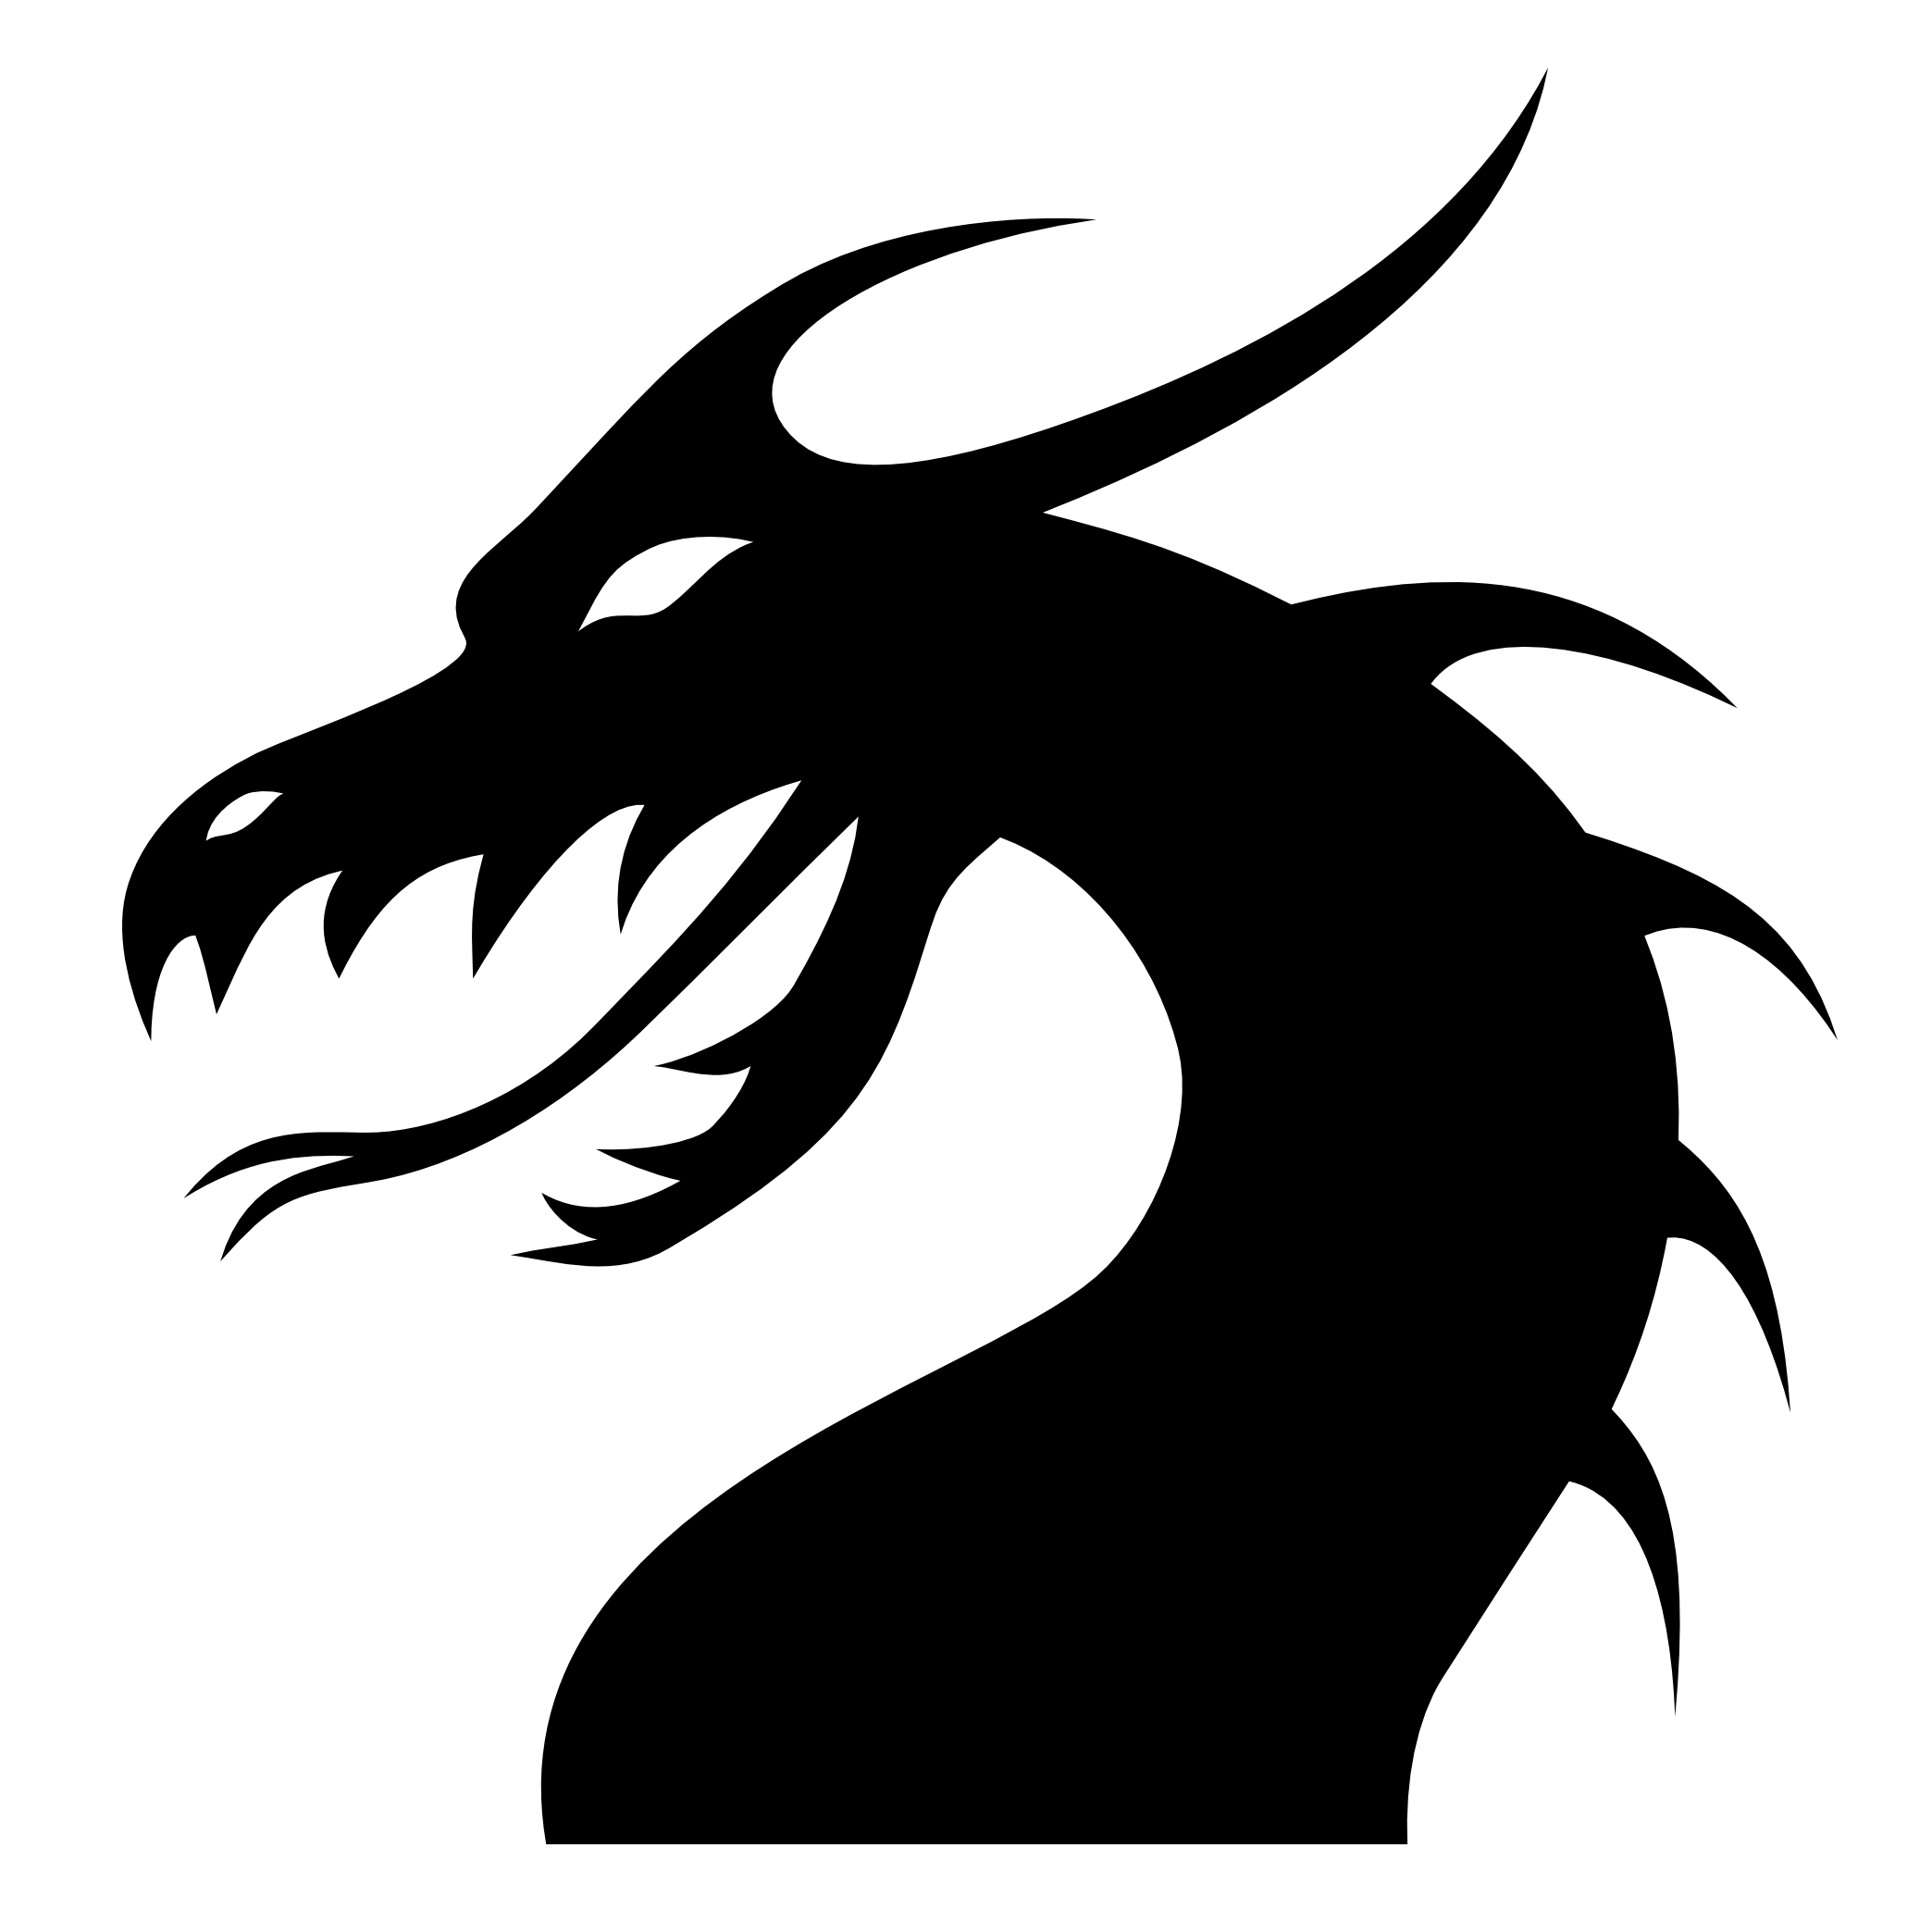 . PlusPng.com Dragon Tattoo Transparent 6 PNGPIX COM Dragon Tattoo PNG Transparent  Image 2.png PlusPng.com  - Dragon Tattoos PNG